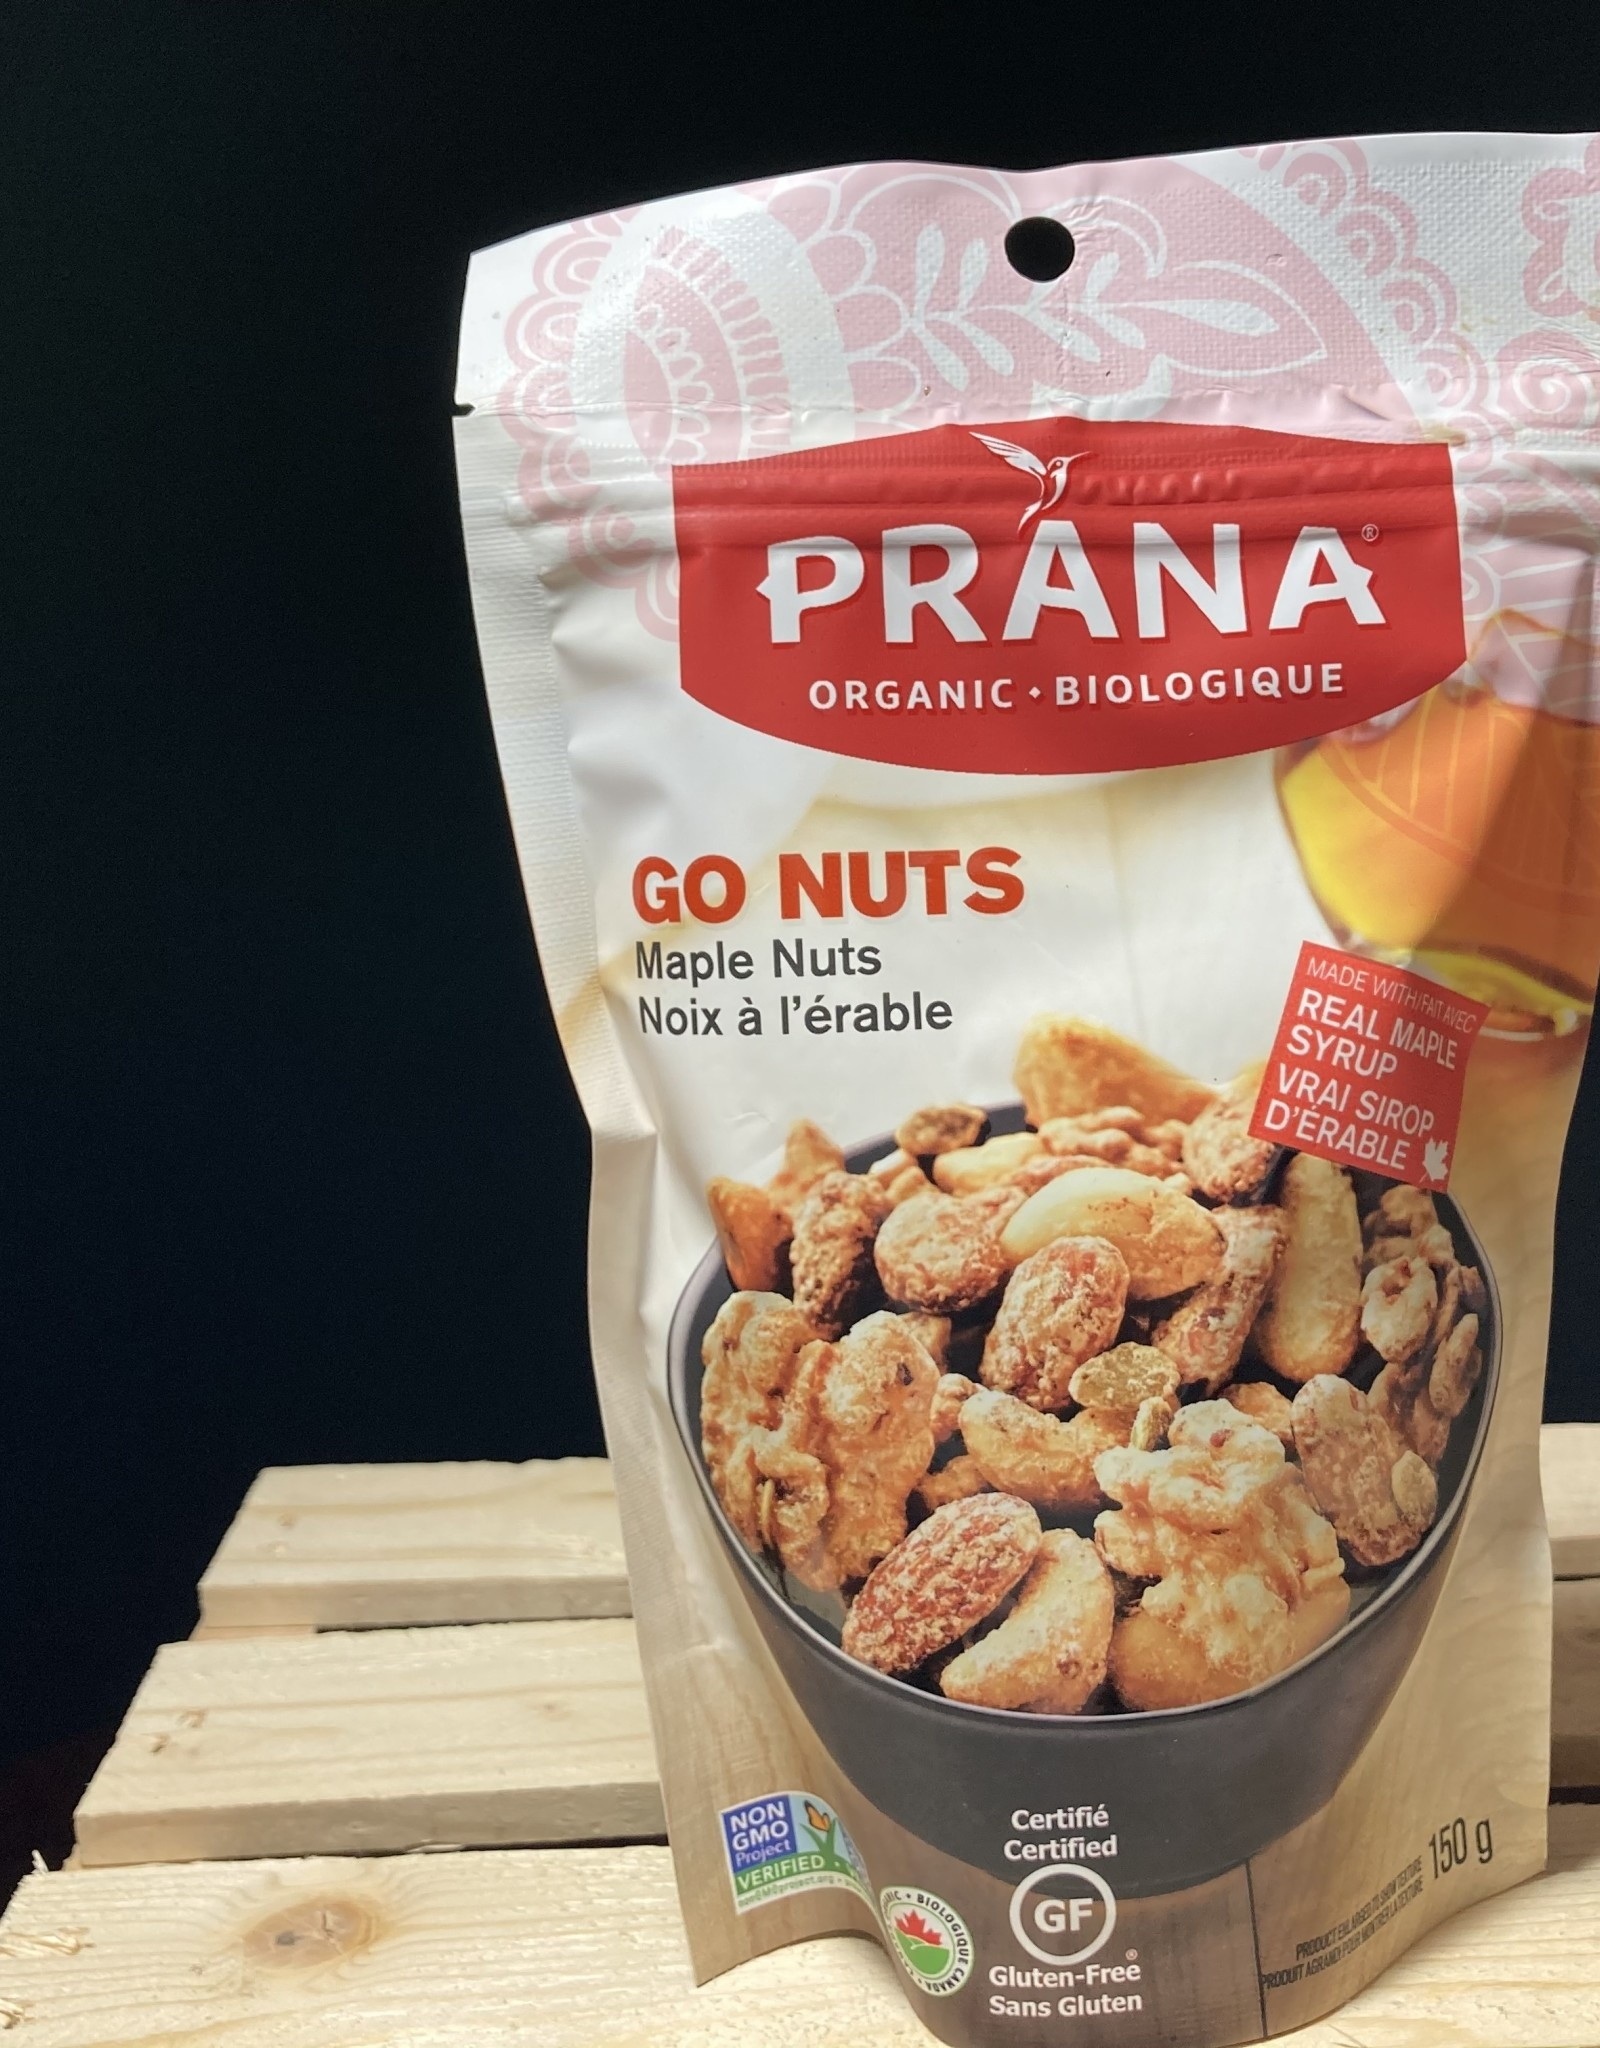 Prana Prana - Bark, Carazel Caramelized Nuts With Sea Salt (100g)